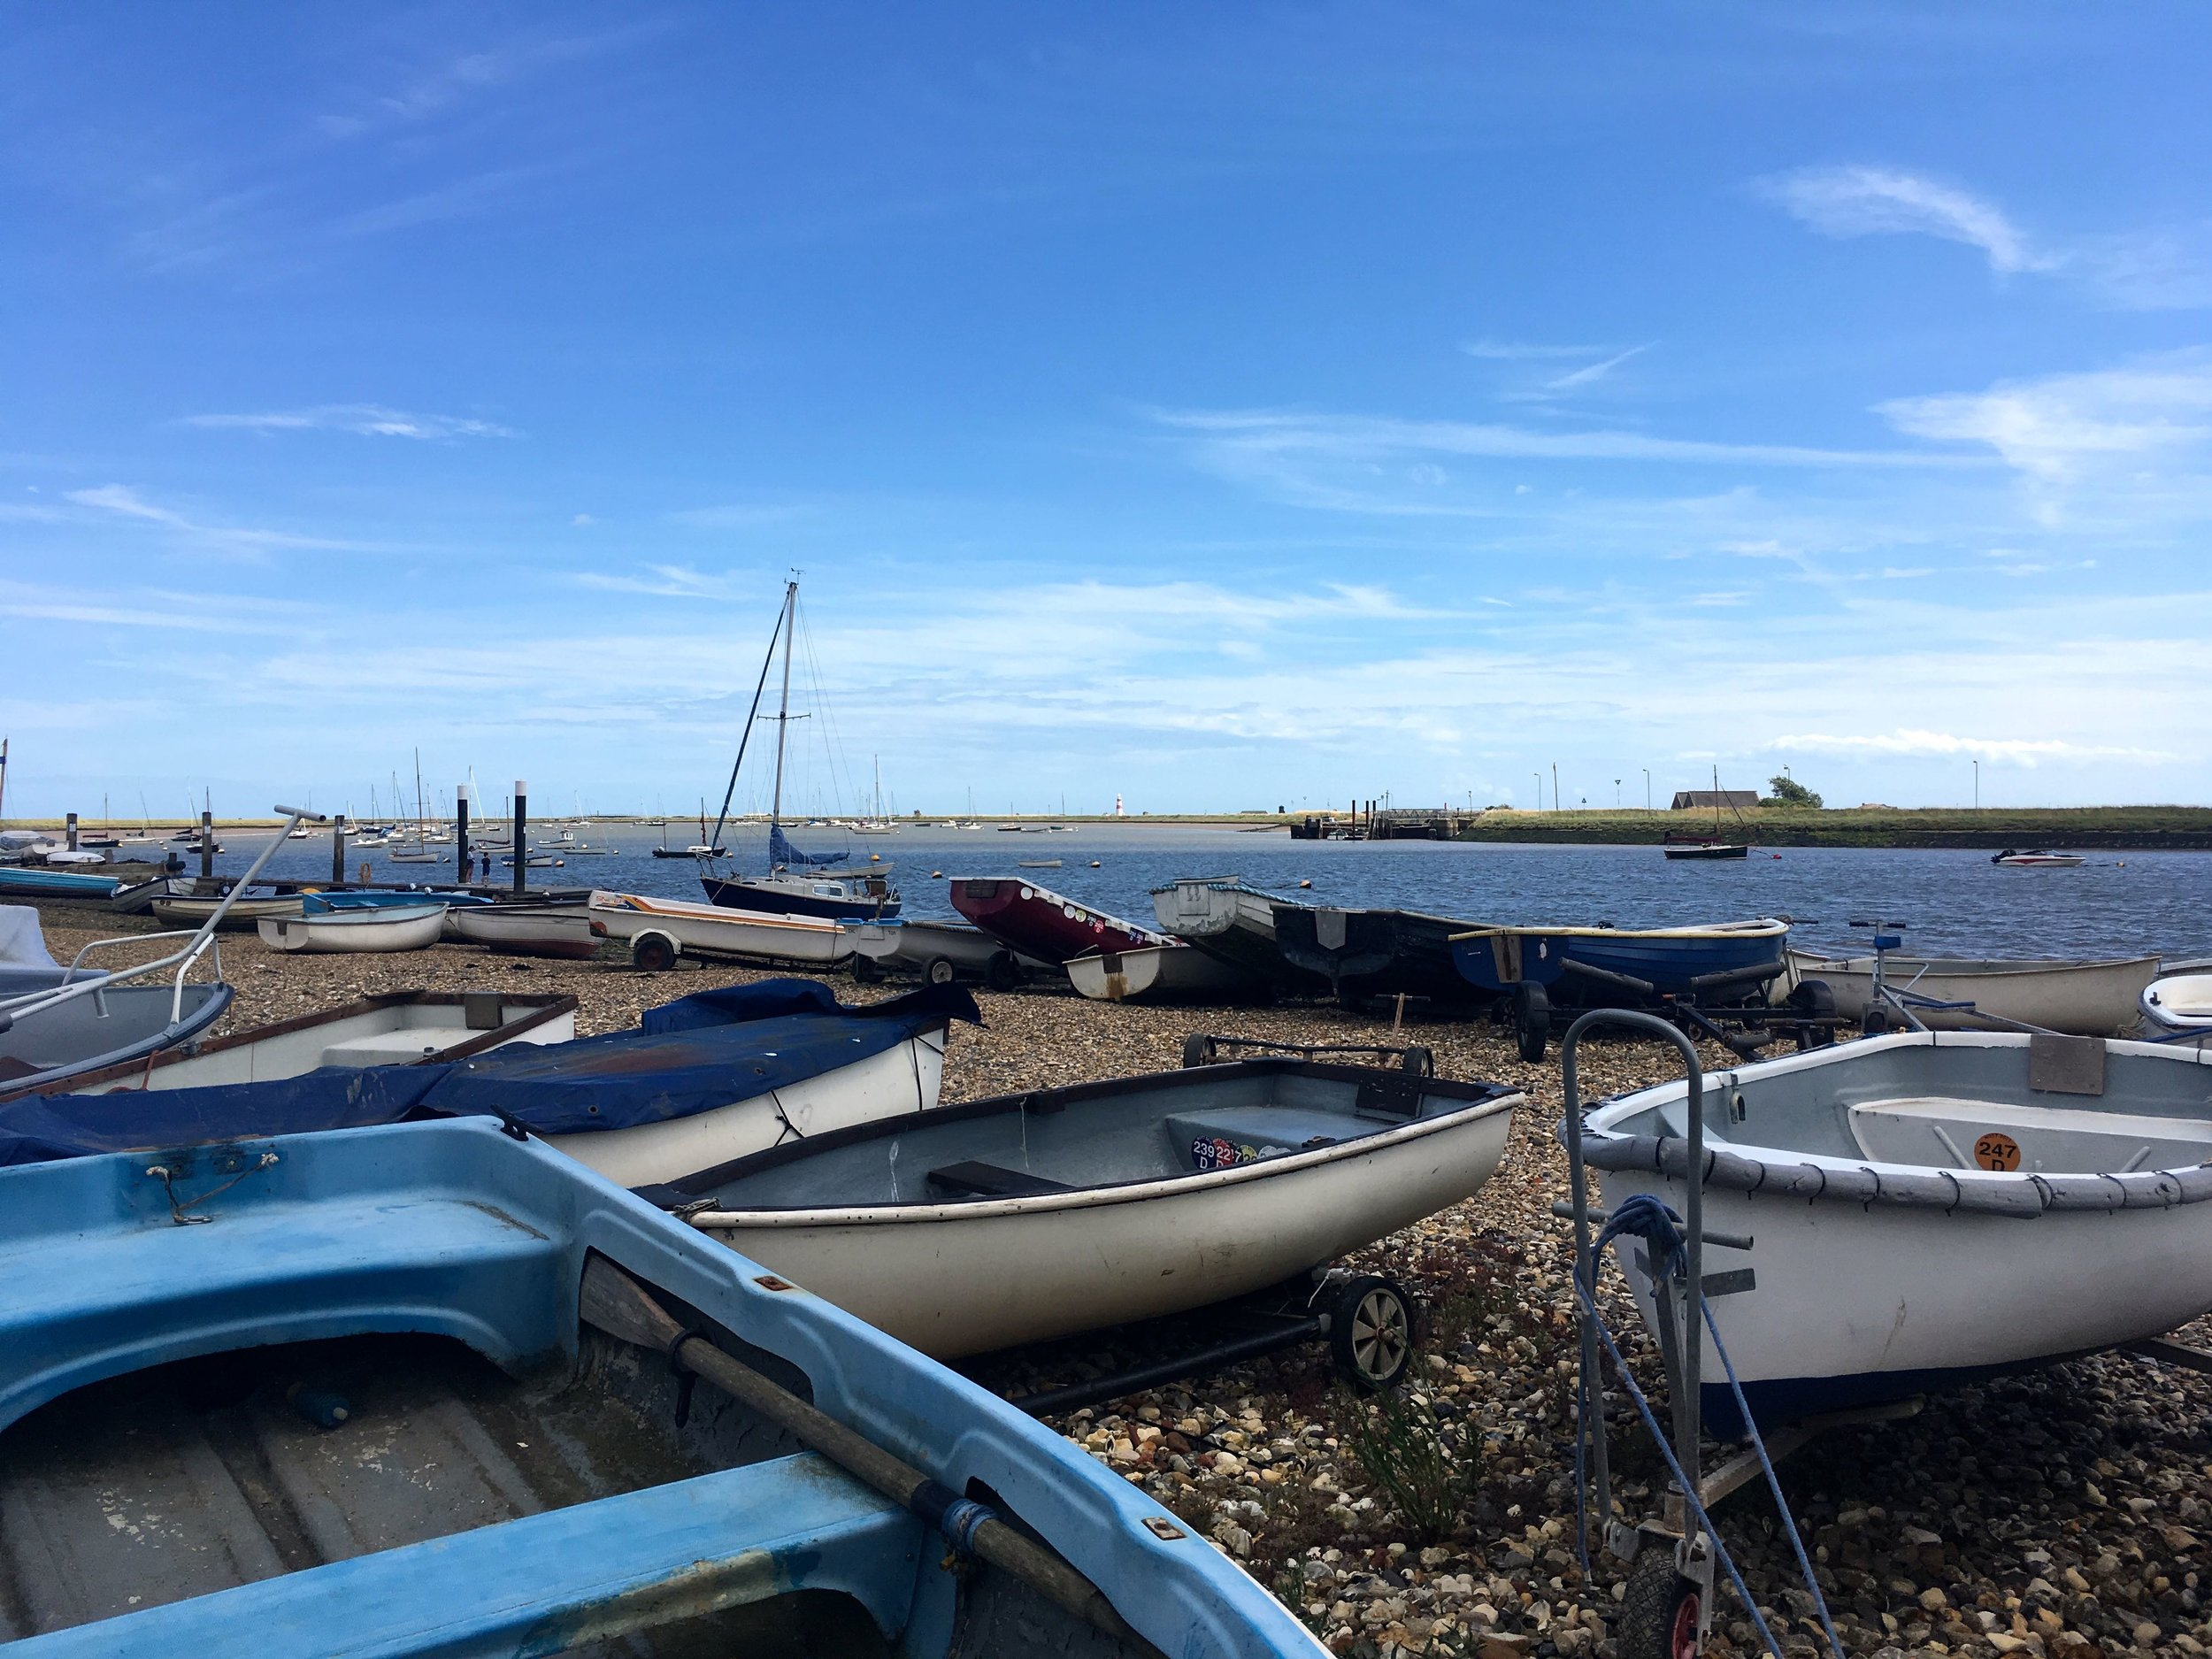 At the quay in Orford in Suffolk